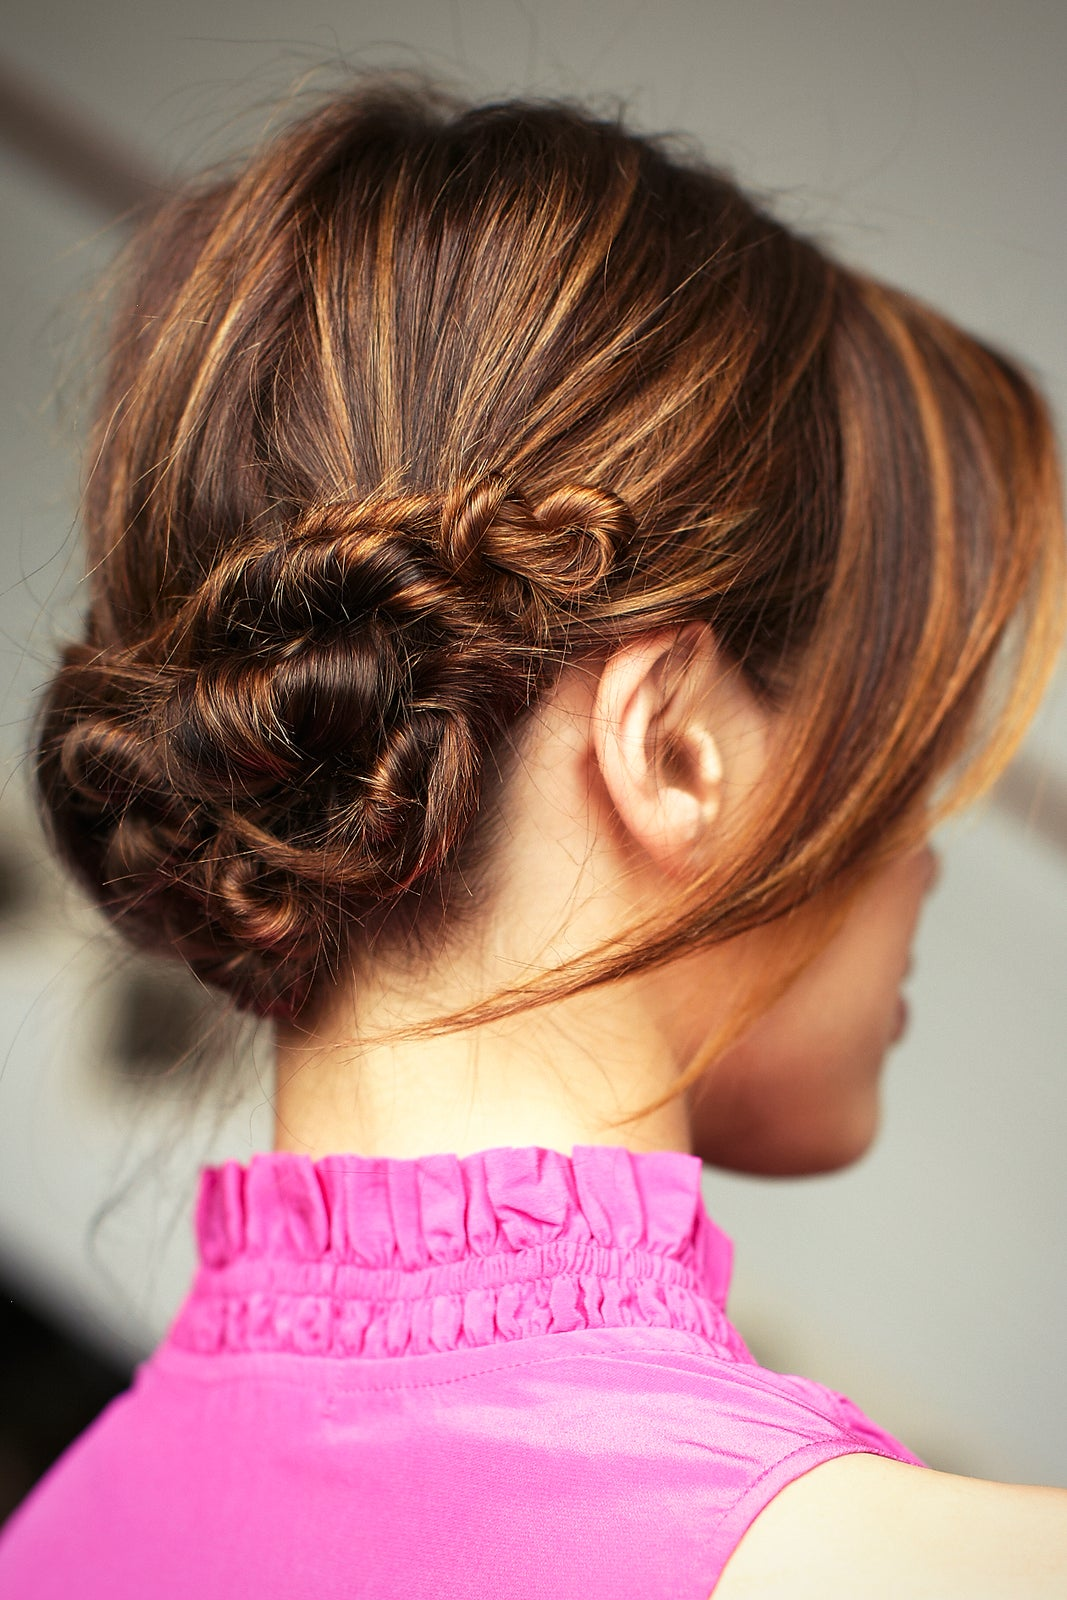 How to knotted a style chignon